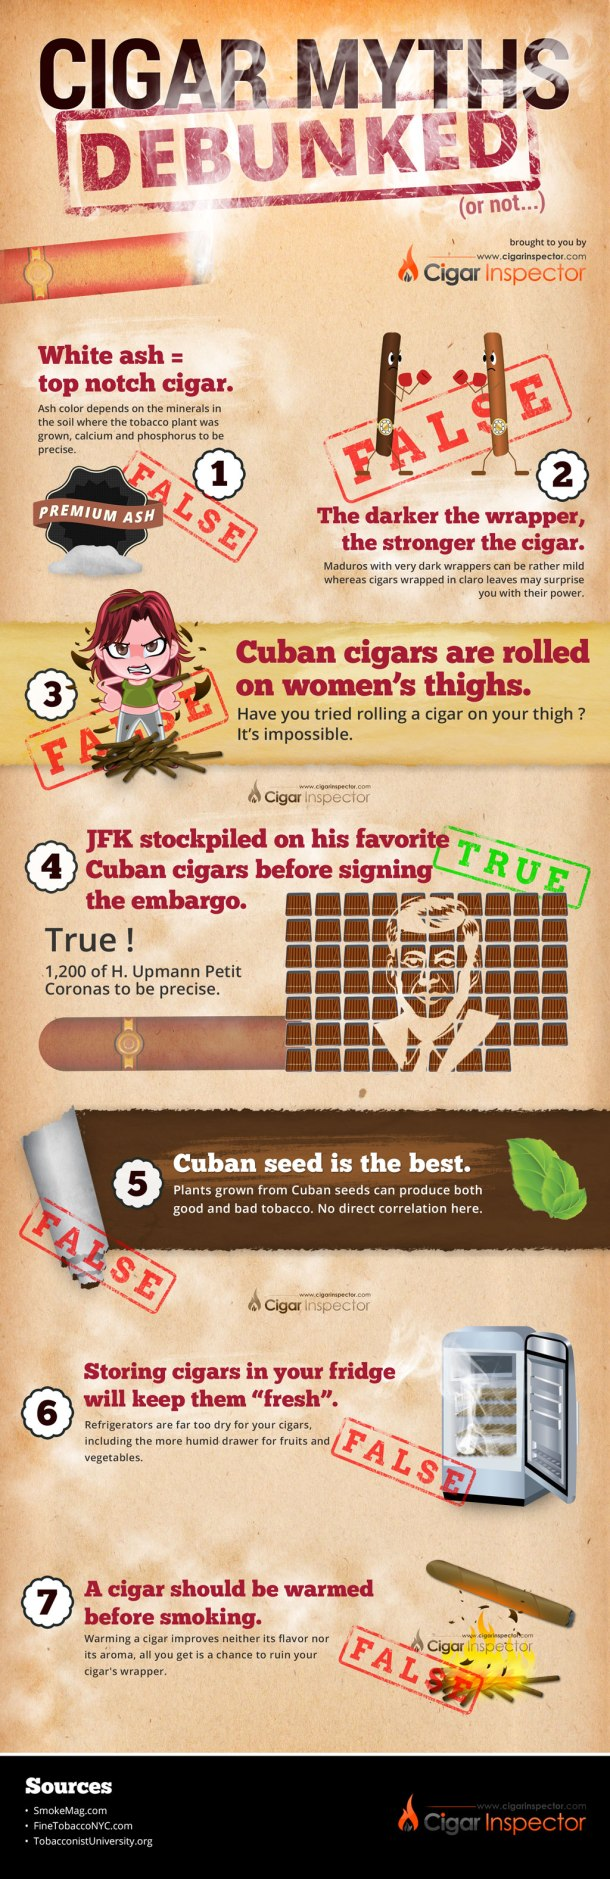 cigar-myths-debunked_5256eec52e9fe